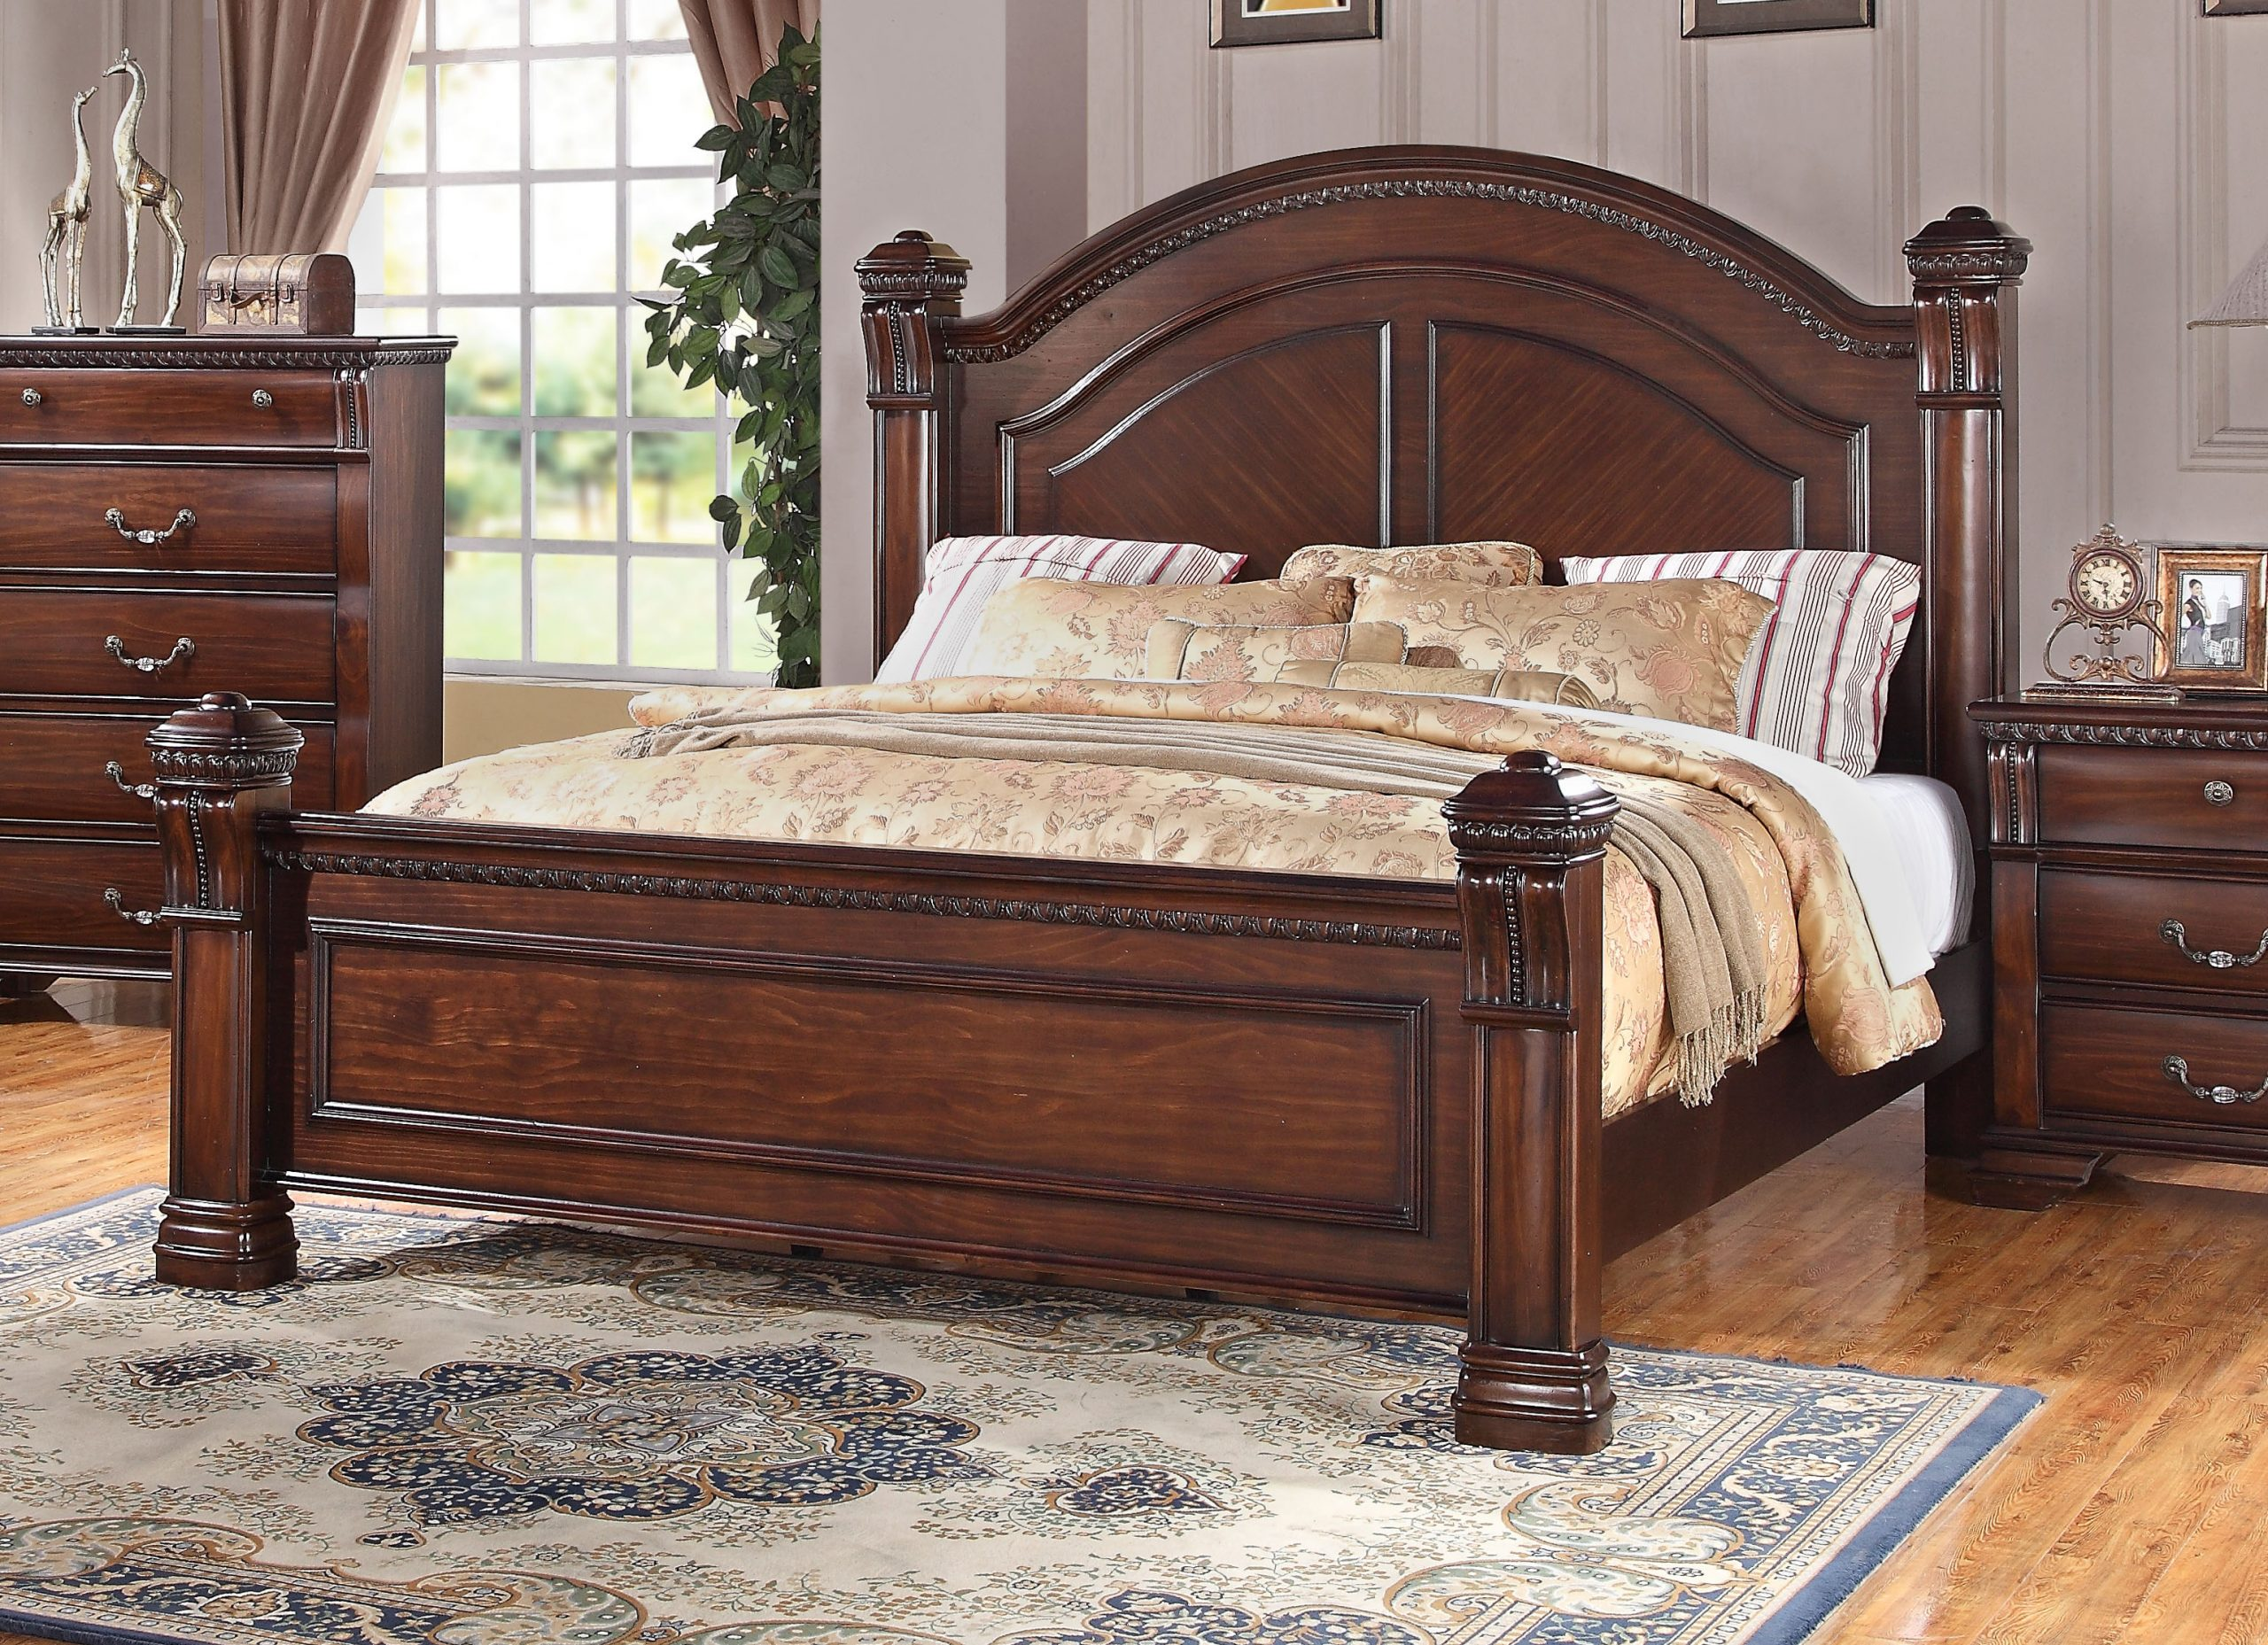 AG527 BED